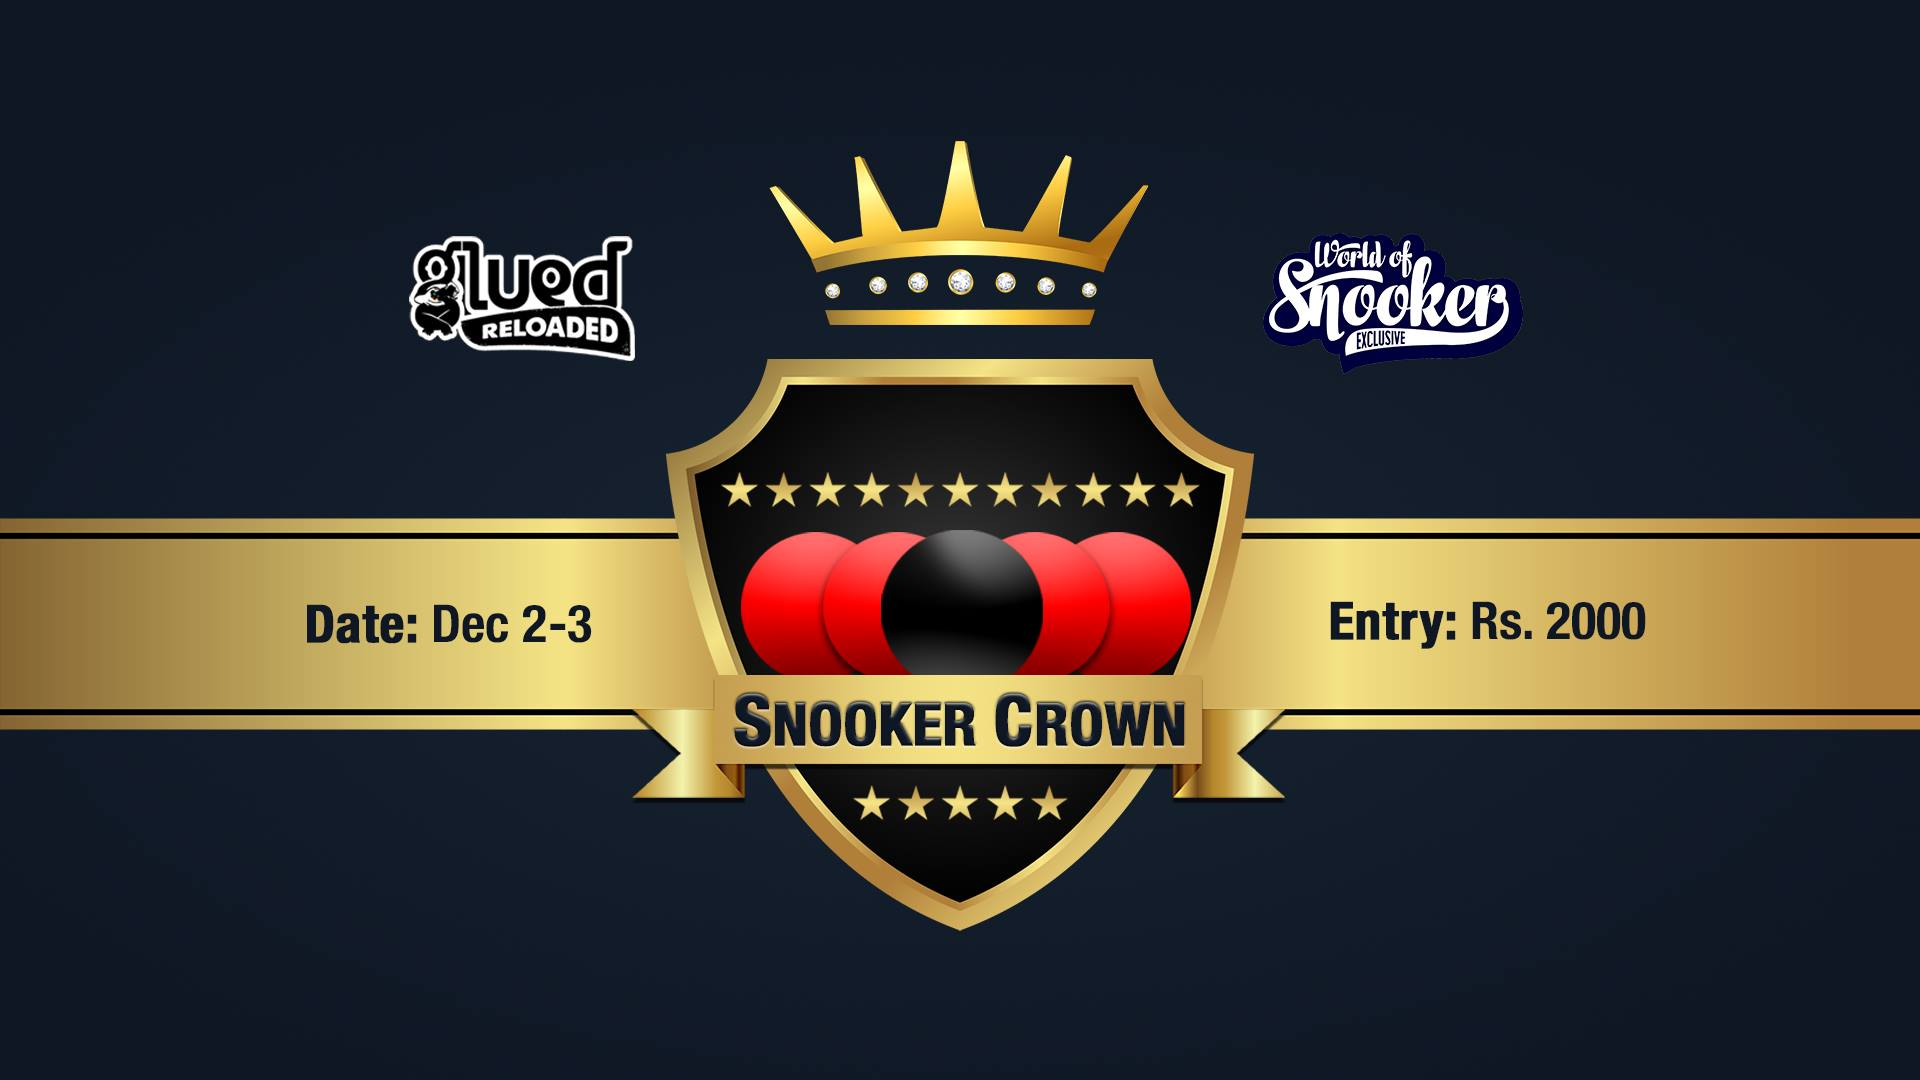 Snooker Crown